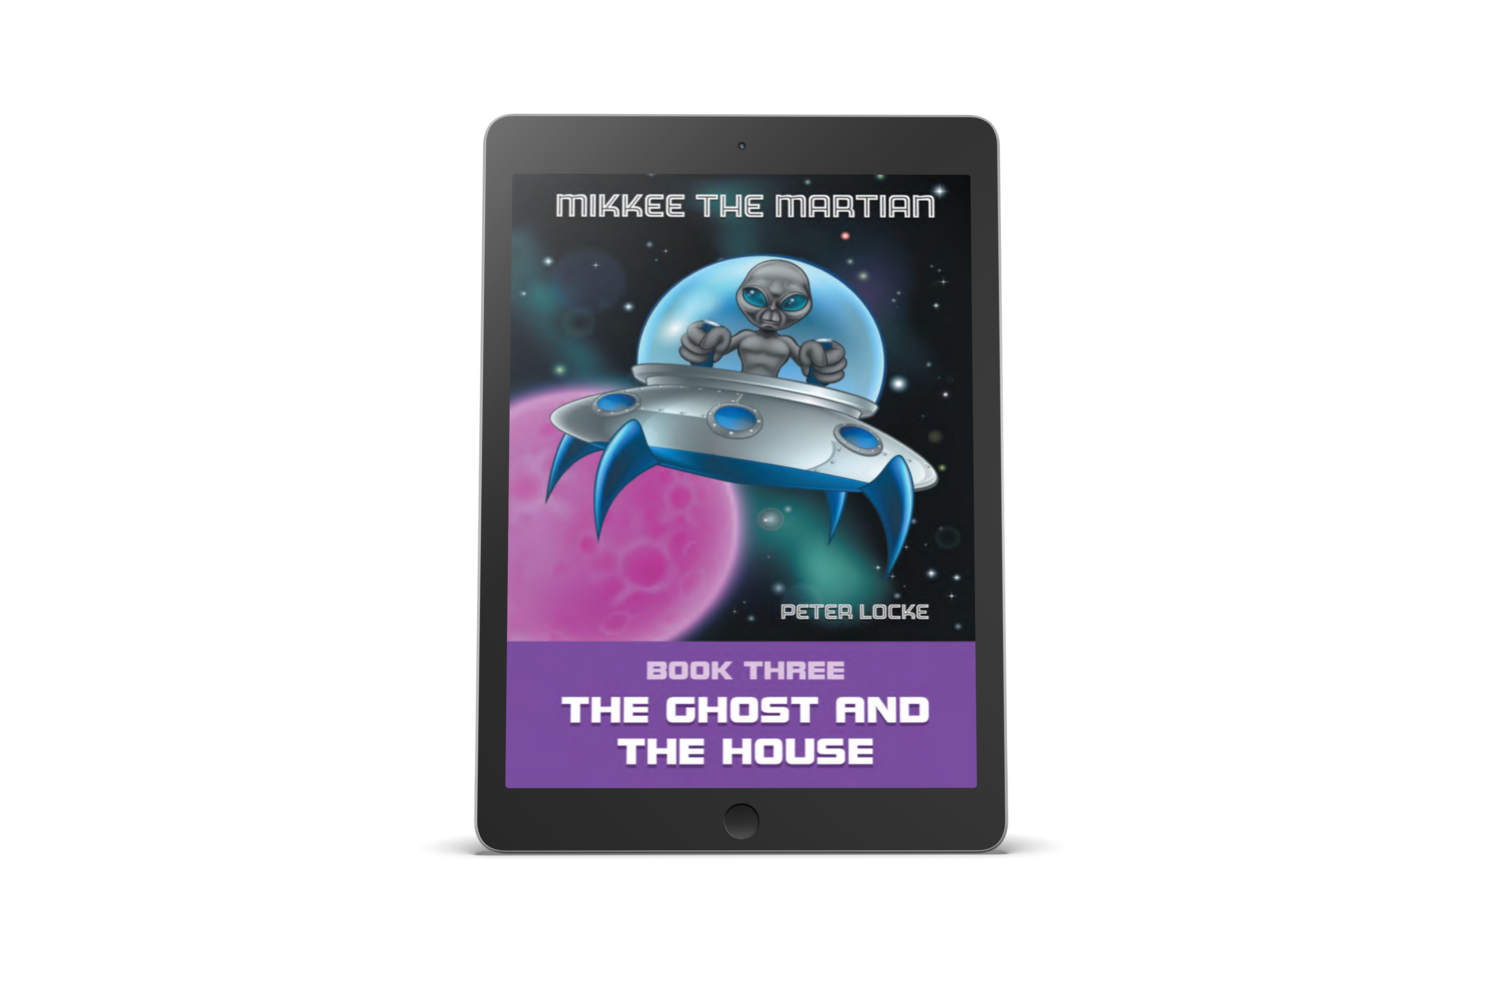 Mikkee the Martian: Book Three the Ghost and the House